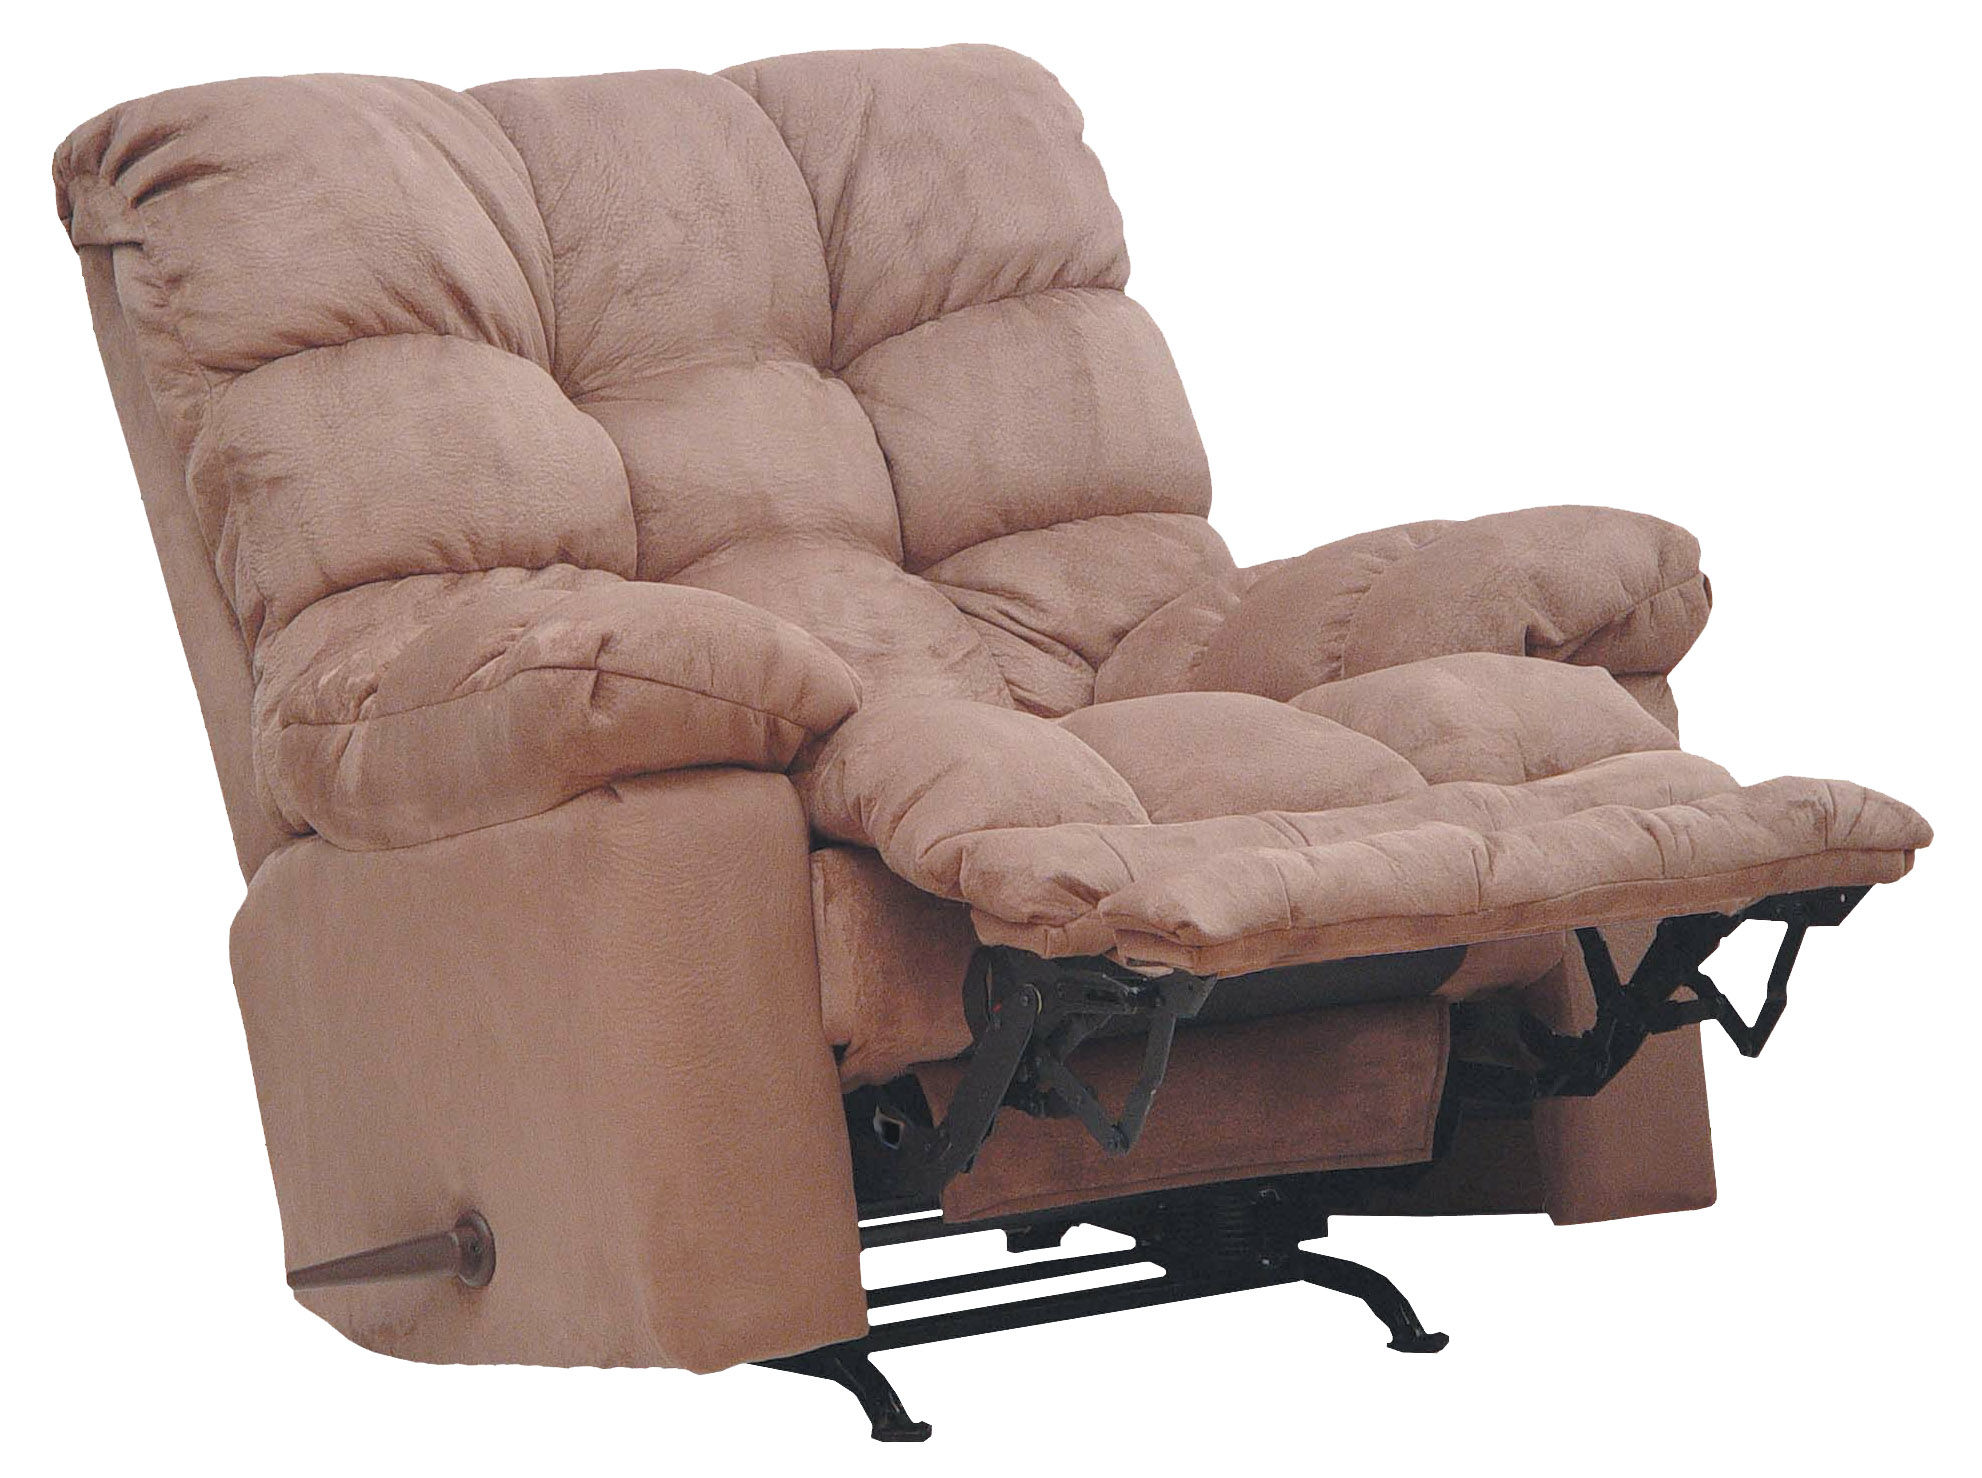 rocker recliner  sc 1 st  Best Recliners & A Guide for Choosing the Best Quality Recliner Chair | Best Recliners islam-shia.org